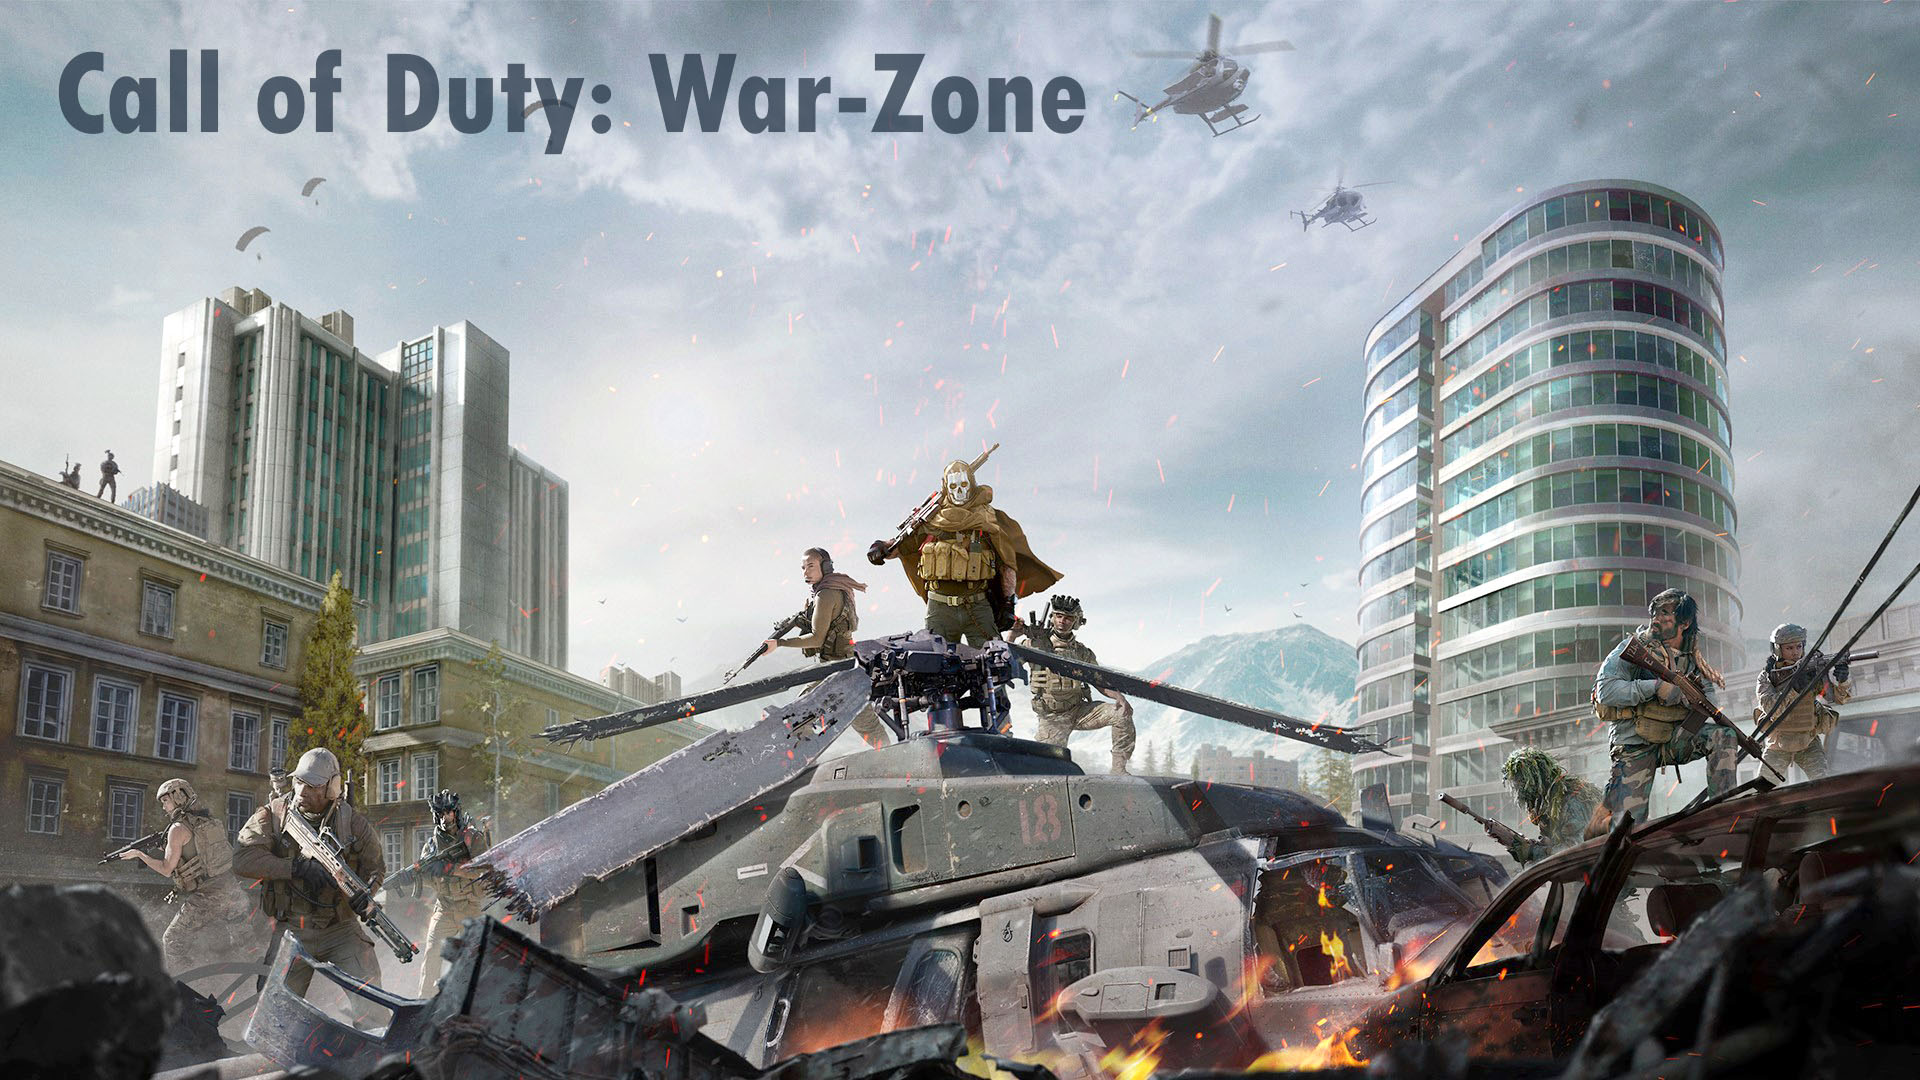 Call of Duty: War-zone Guide – Tips, Secrets & Survival Guide